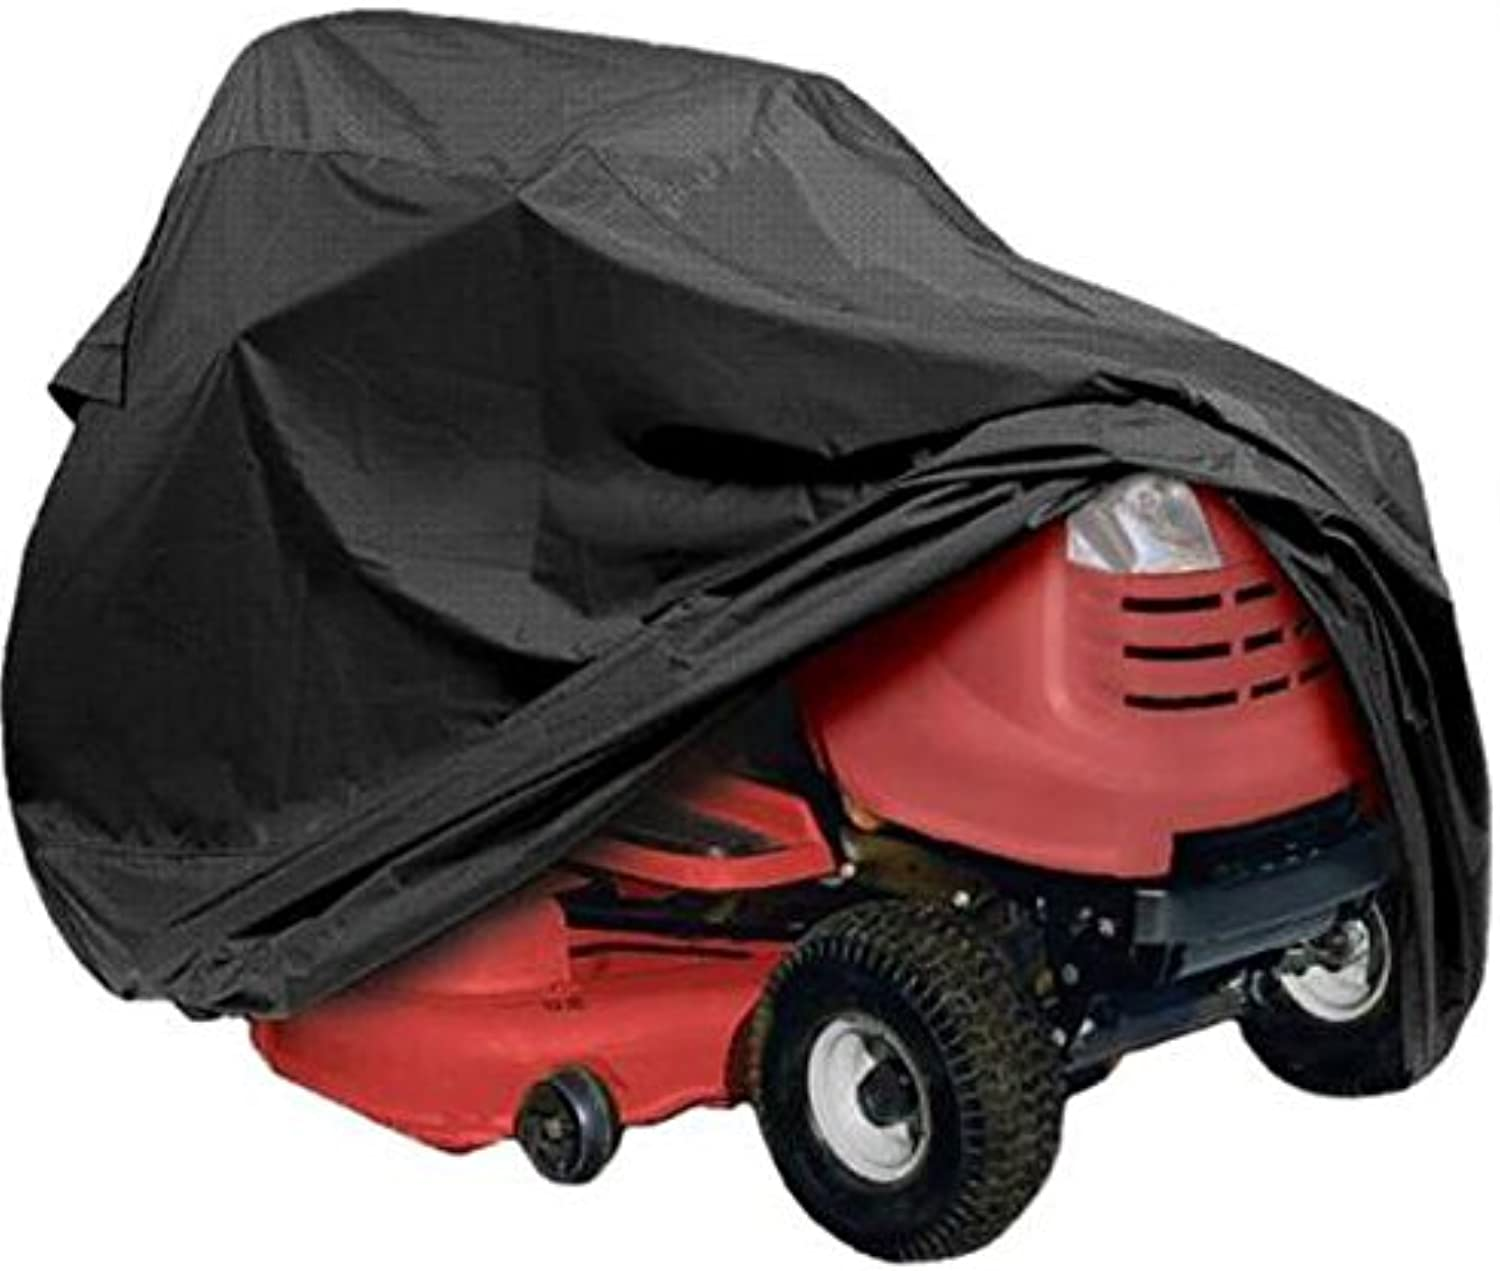 ShopSquare64 177 x 110 x 110cm Polyester Black Tractor Grill Cover Garden Yard Mower Overlay